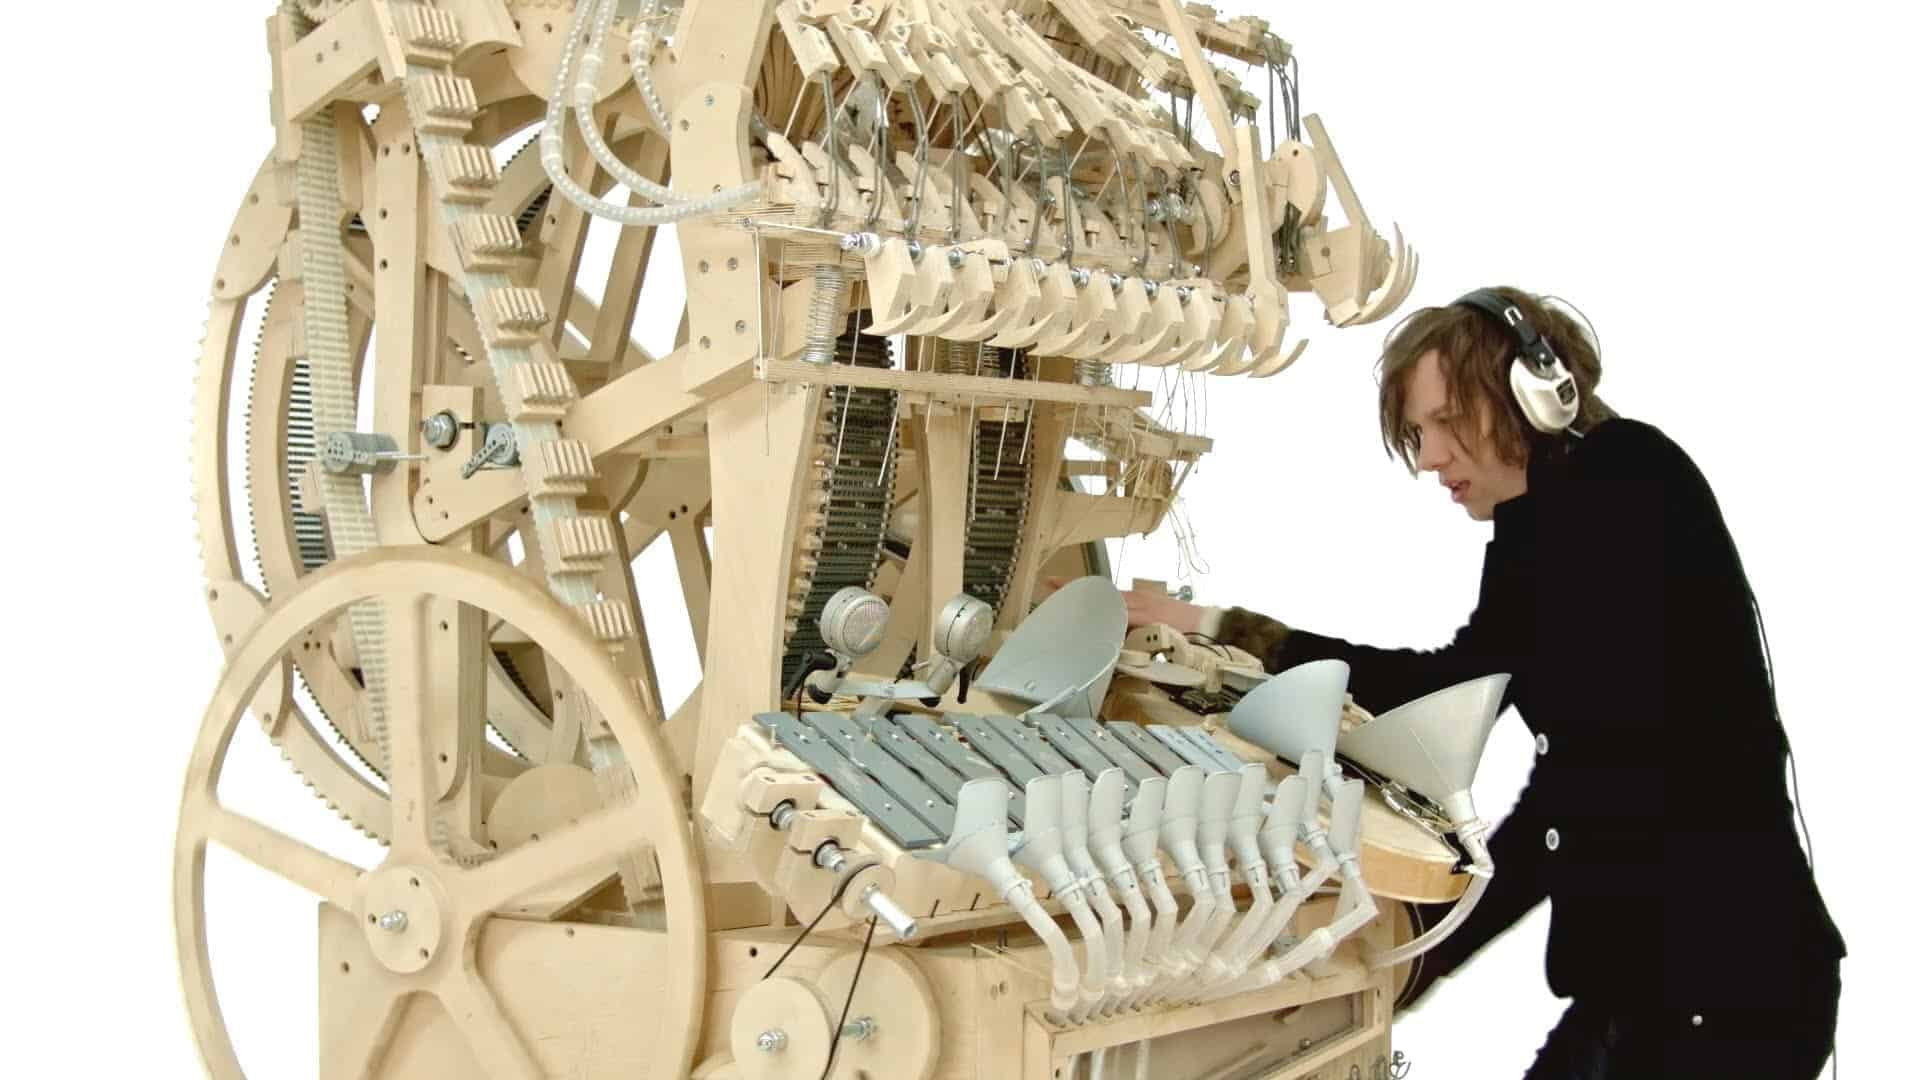 Wintergatan - Marble Machine photo